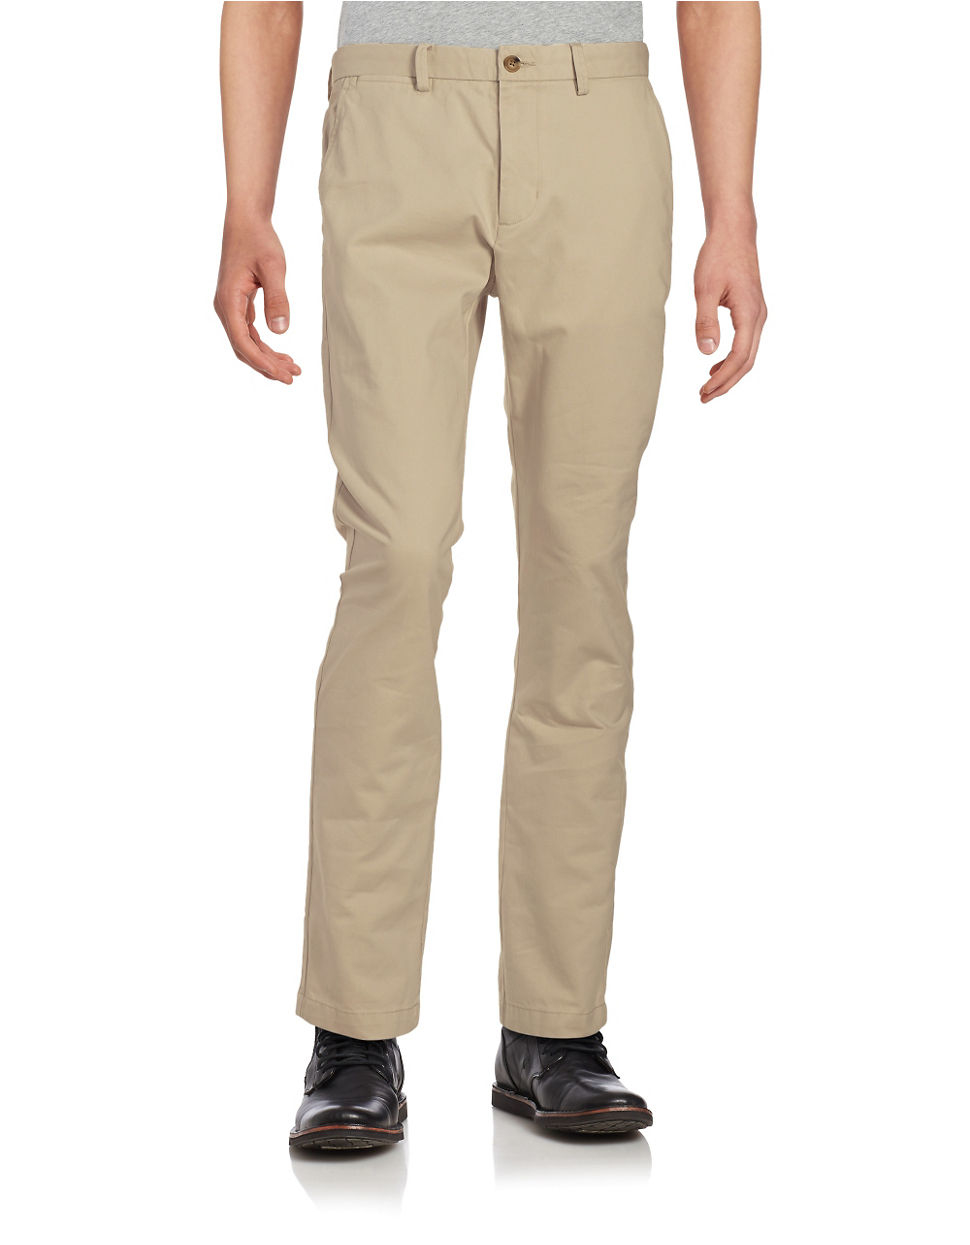 Mens Brown Pants at Macy's come in all styles and sizes. Shop Men's Pants: Dress Pants, Chinos, Khakis, Brown pants and more at Macy's! Lauren Ralph Lauren Men's Classic/Regular Fit Light Brown Pattern Wool Dress Pants $ more like this. 3 colors. Dockers Men's Utility Cargo Straight Fit Khaki Stretch Pants.